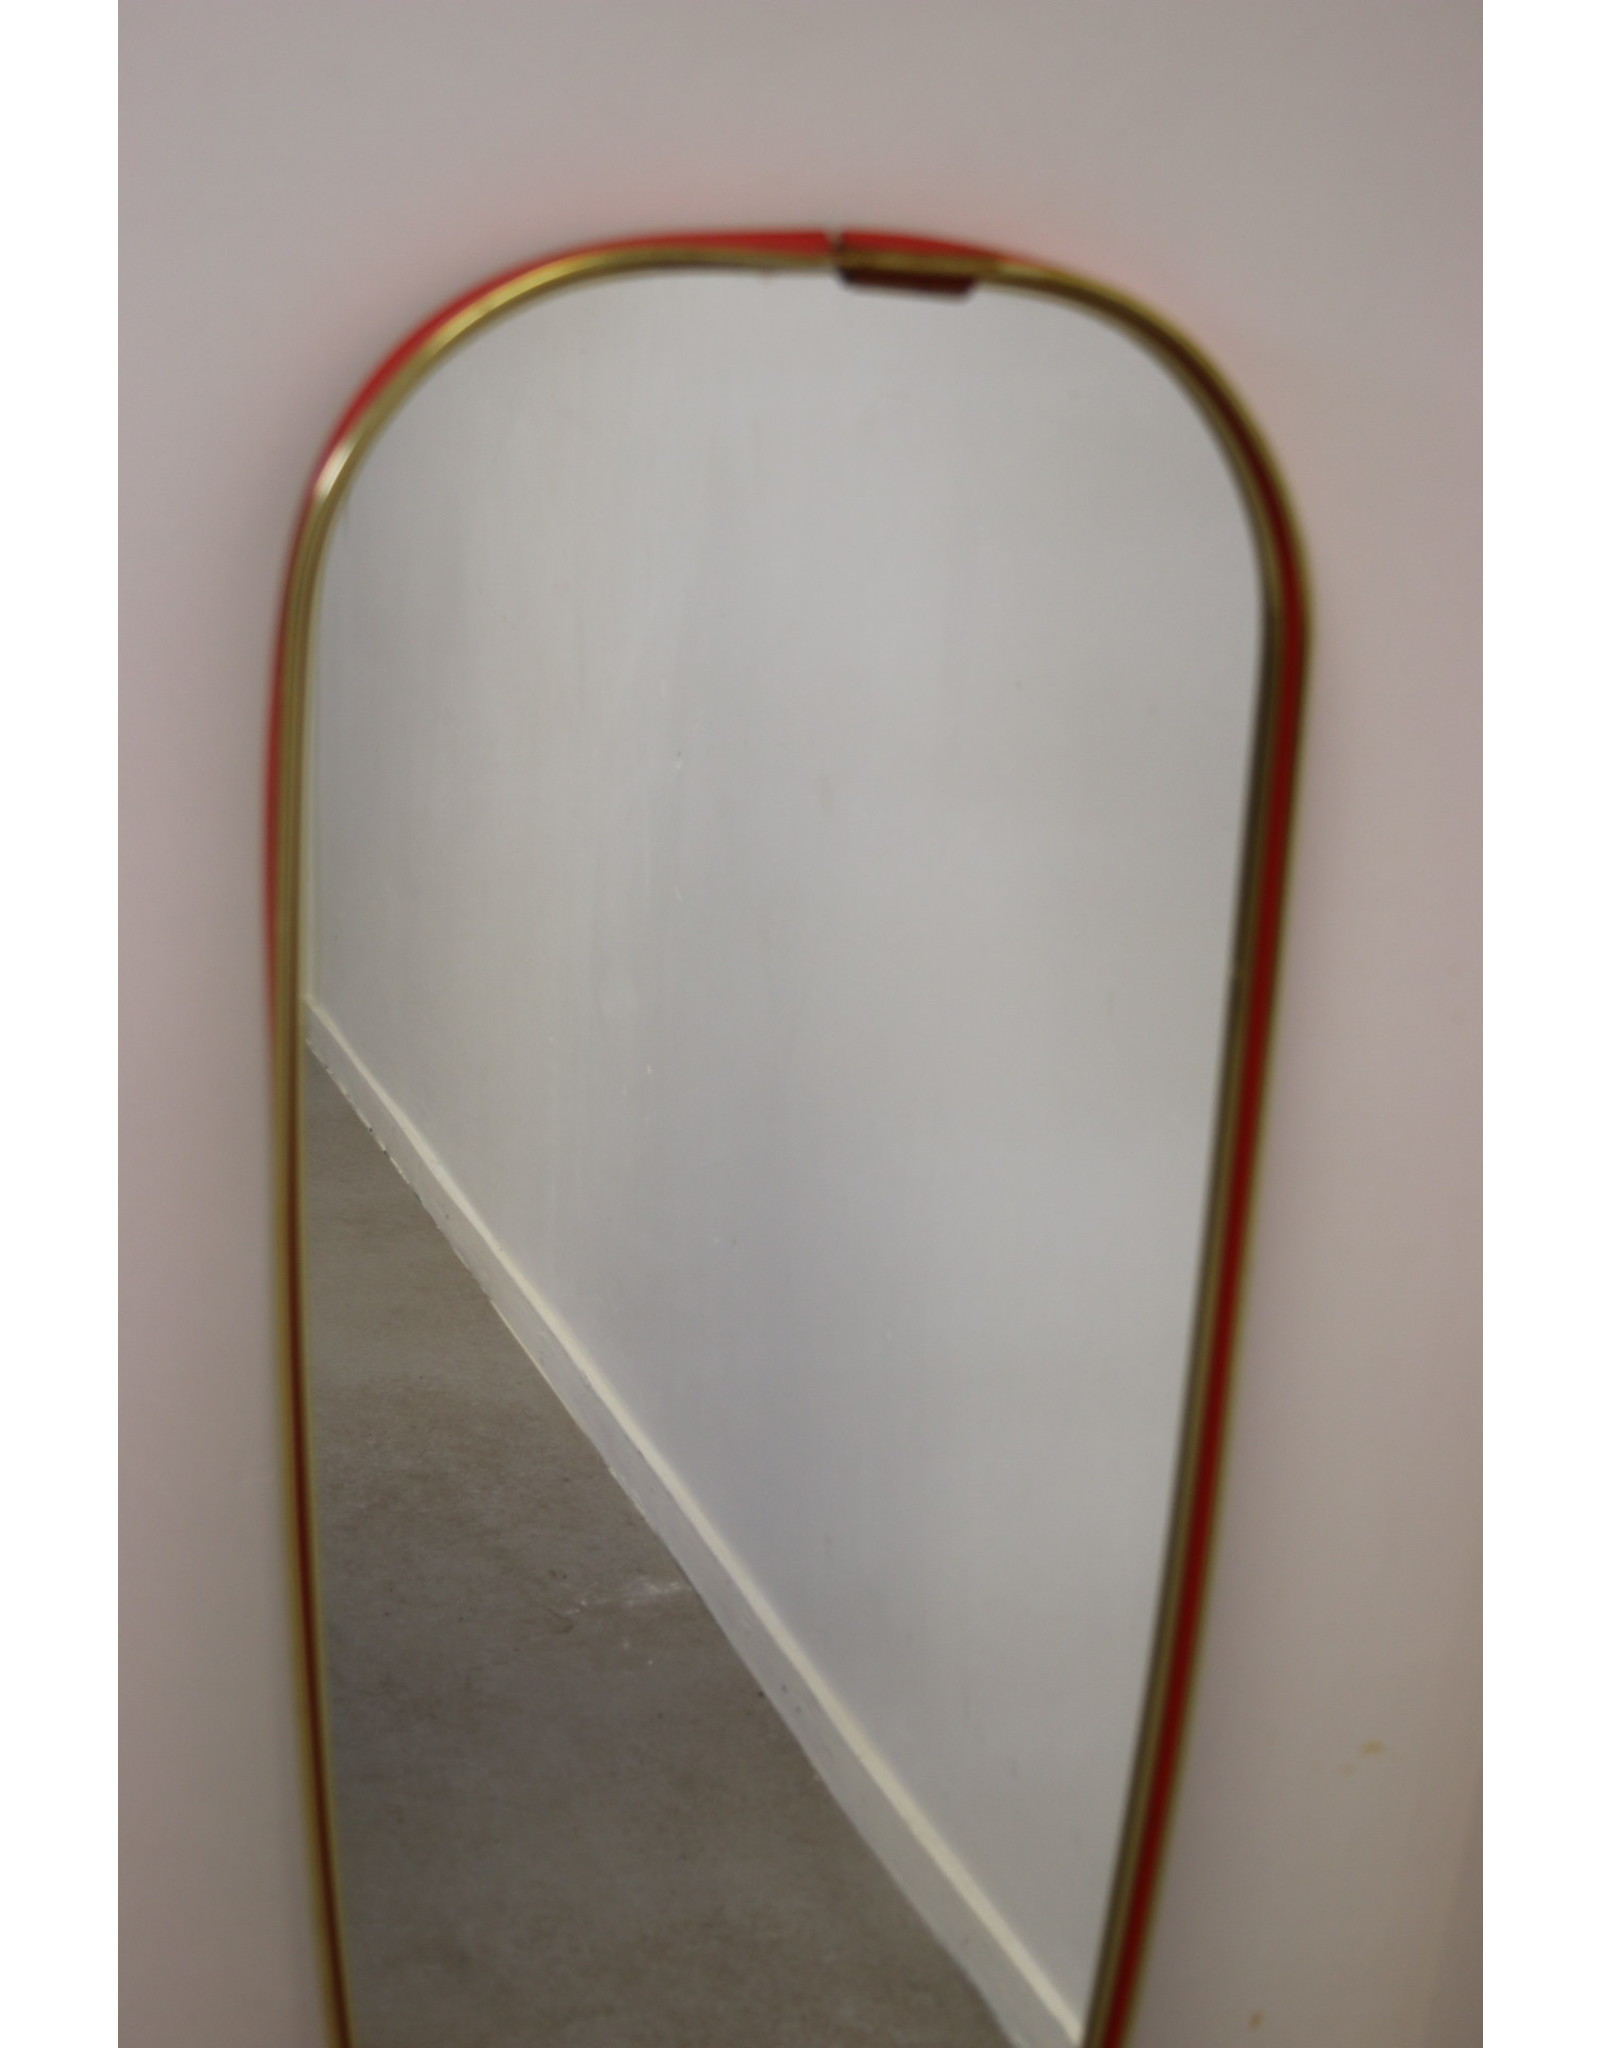 Vintage Wall Mirror With Red Border Timeless Art Nl